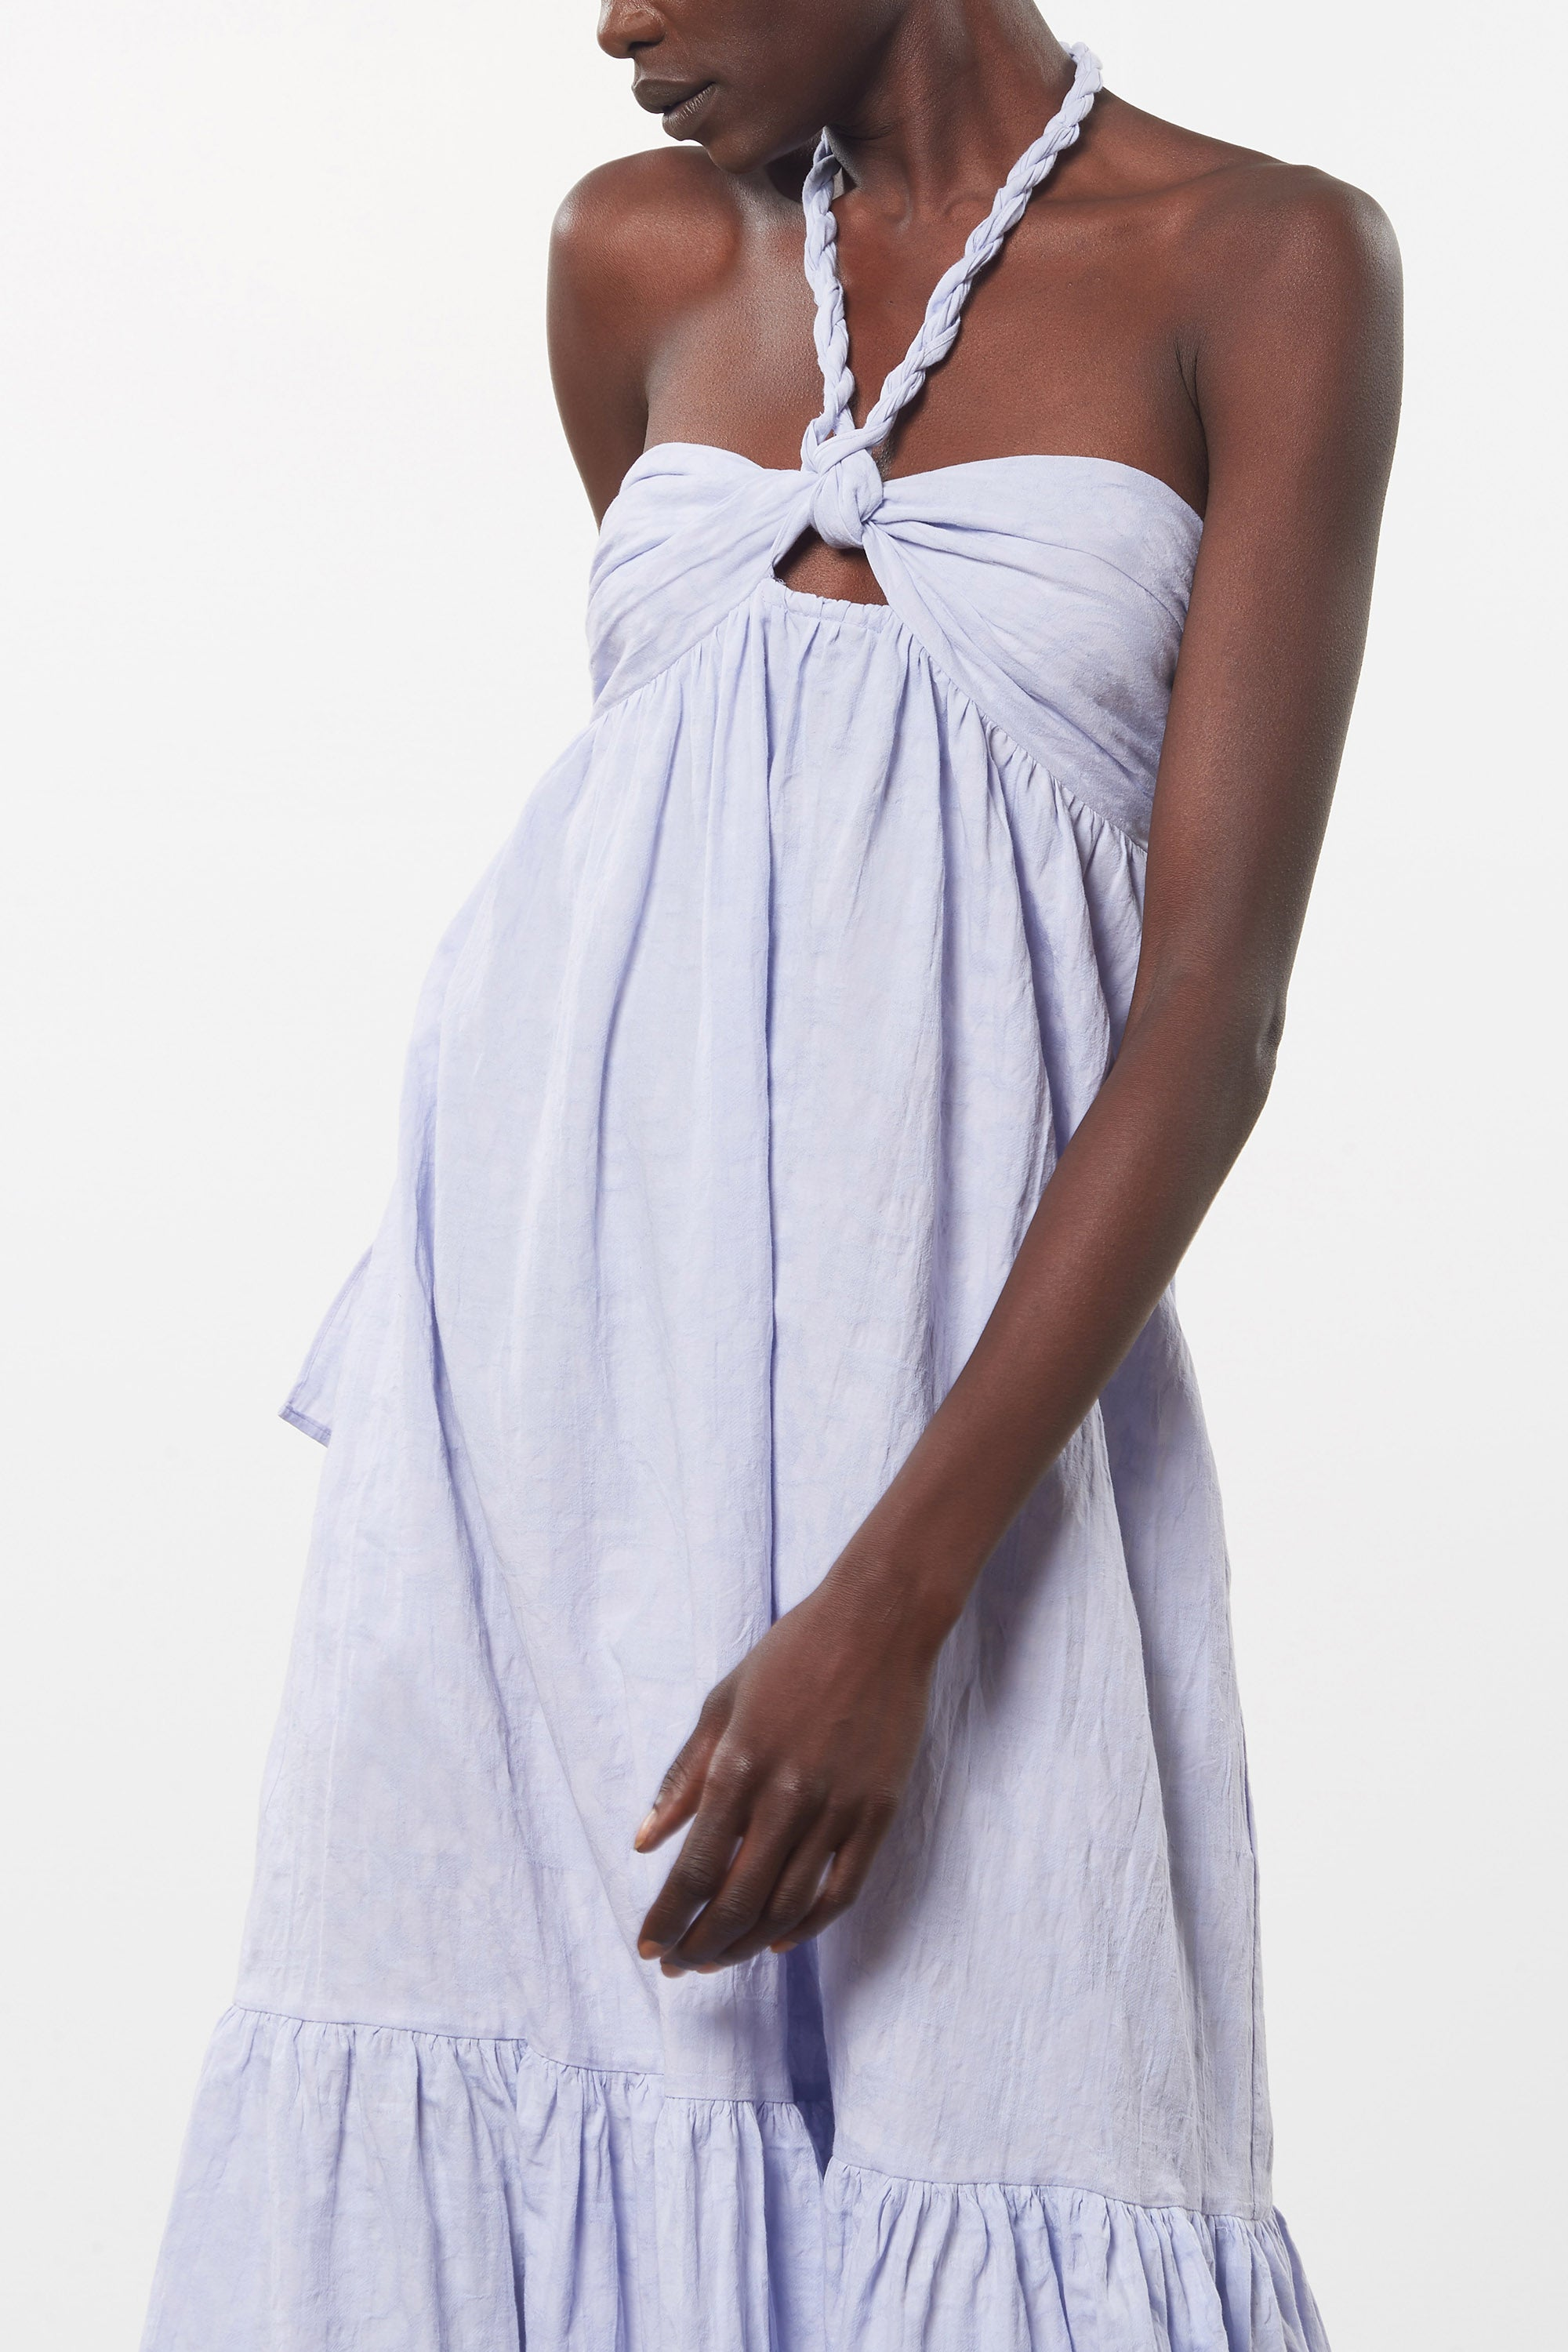 Mara Hoffman Lavender Basilia Cover Up Dress in organic cotton and linen (front detail)